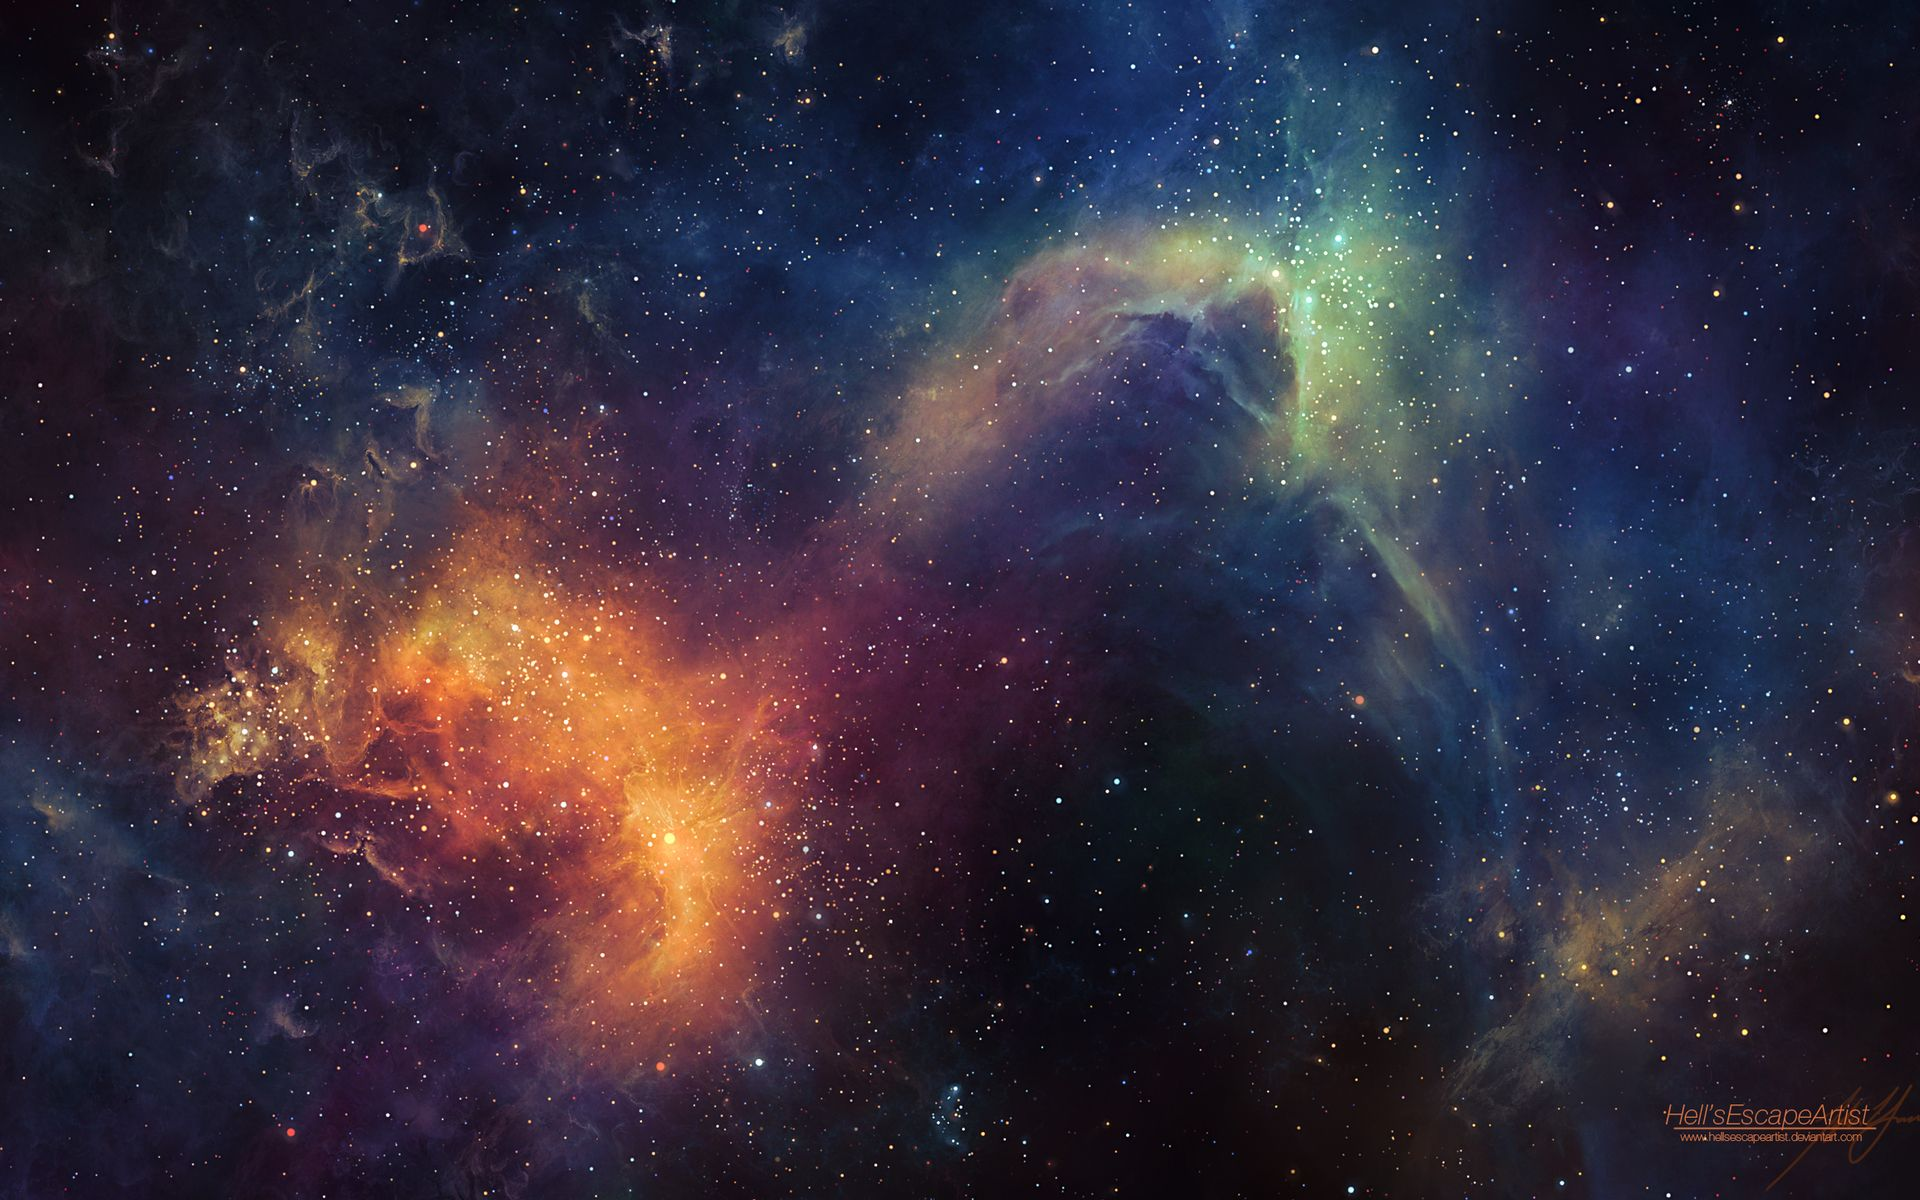 Space Stars Bing Images A collection of dust and gas